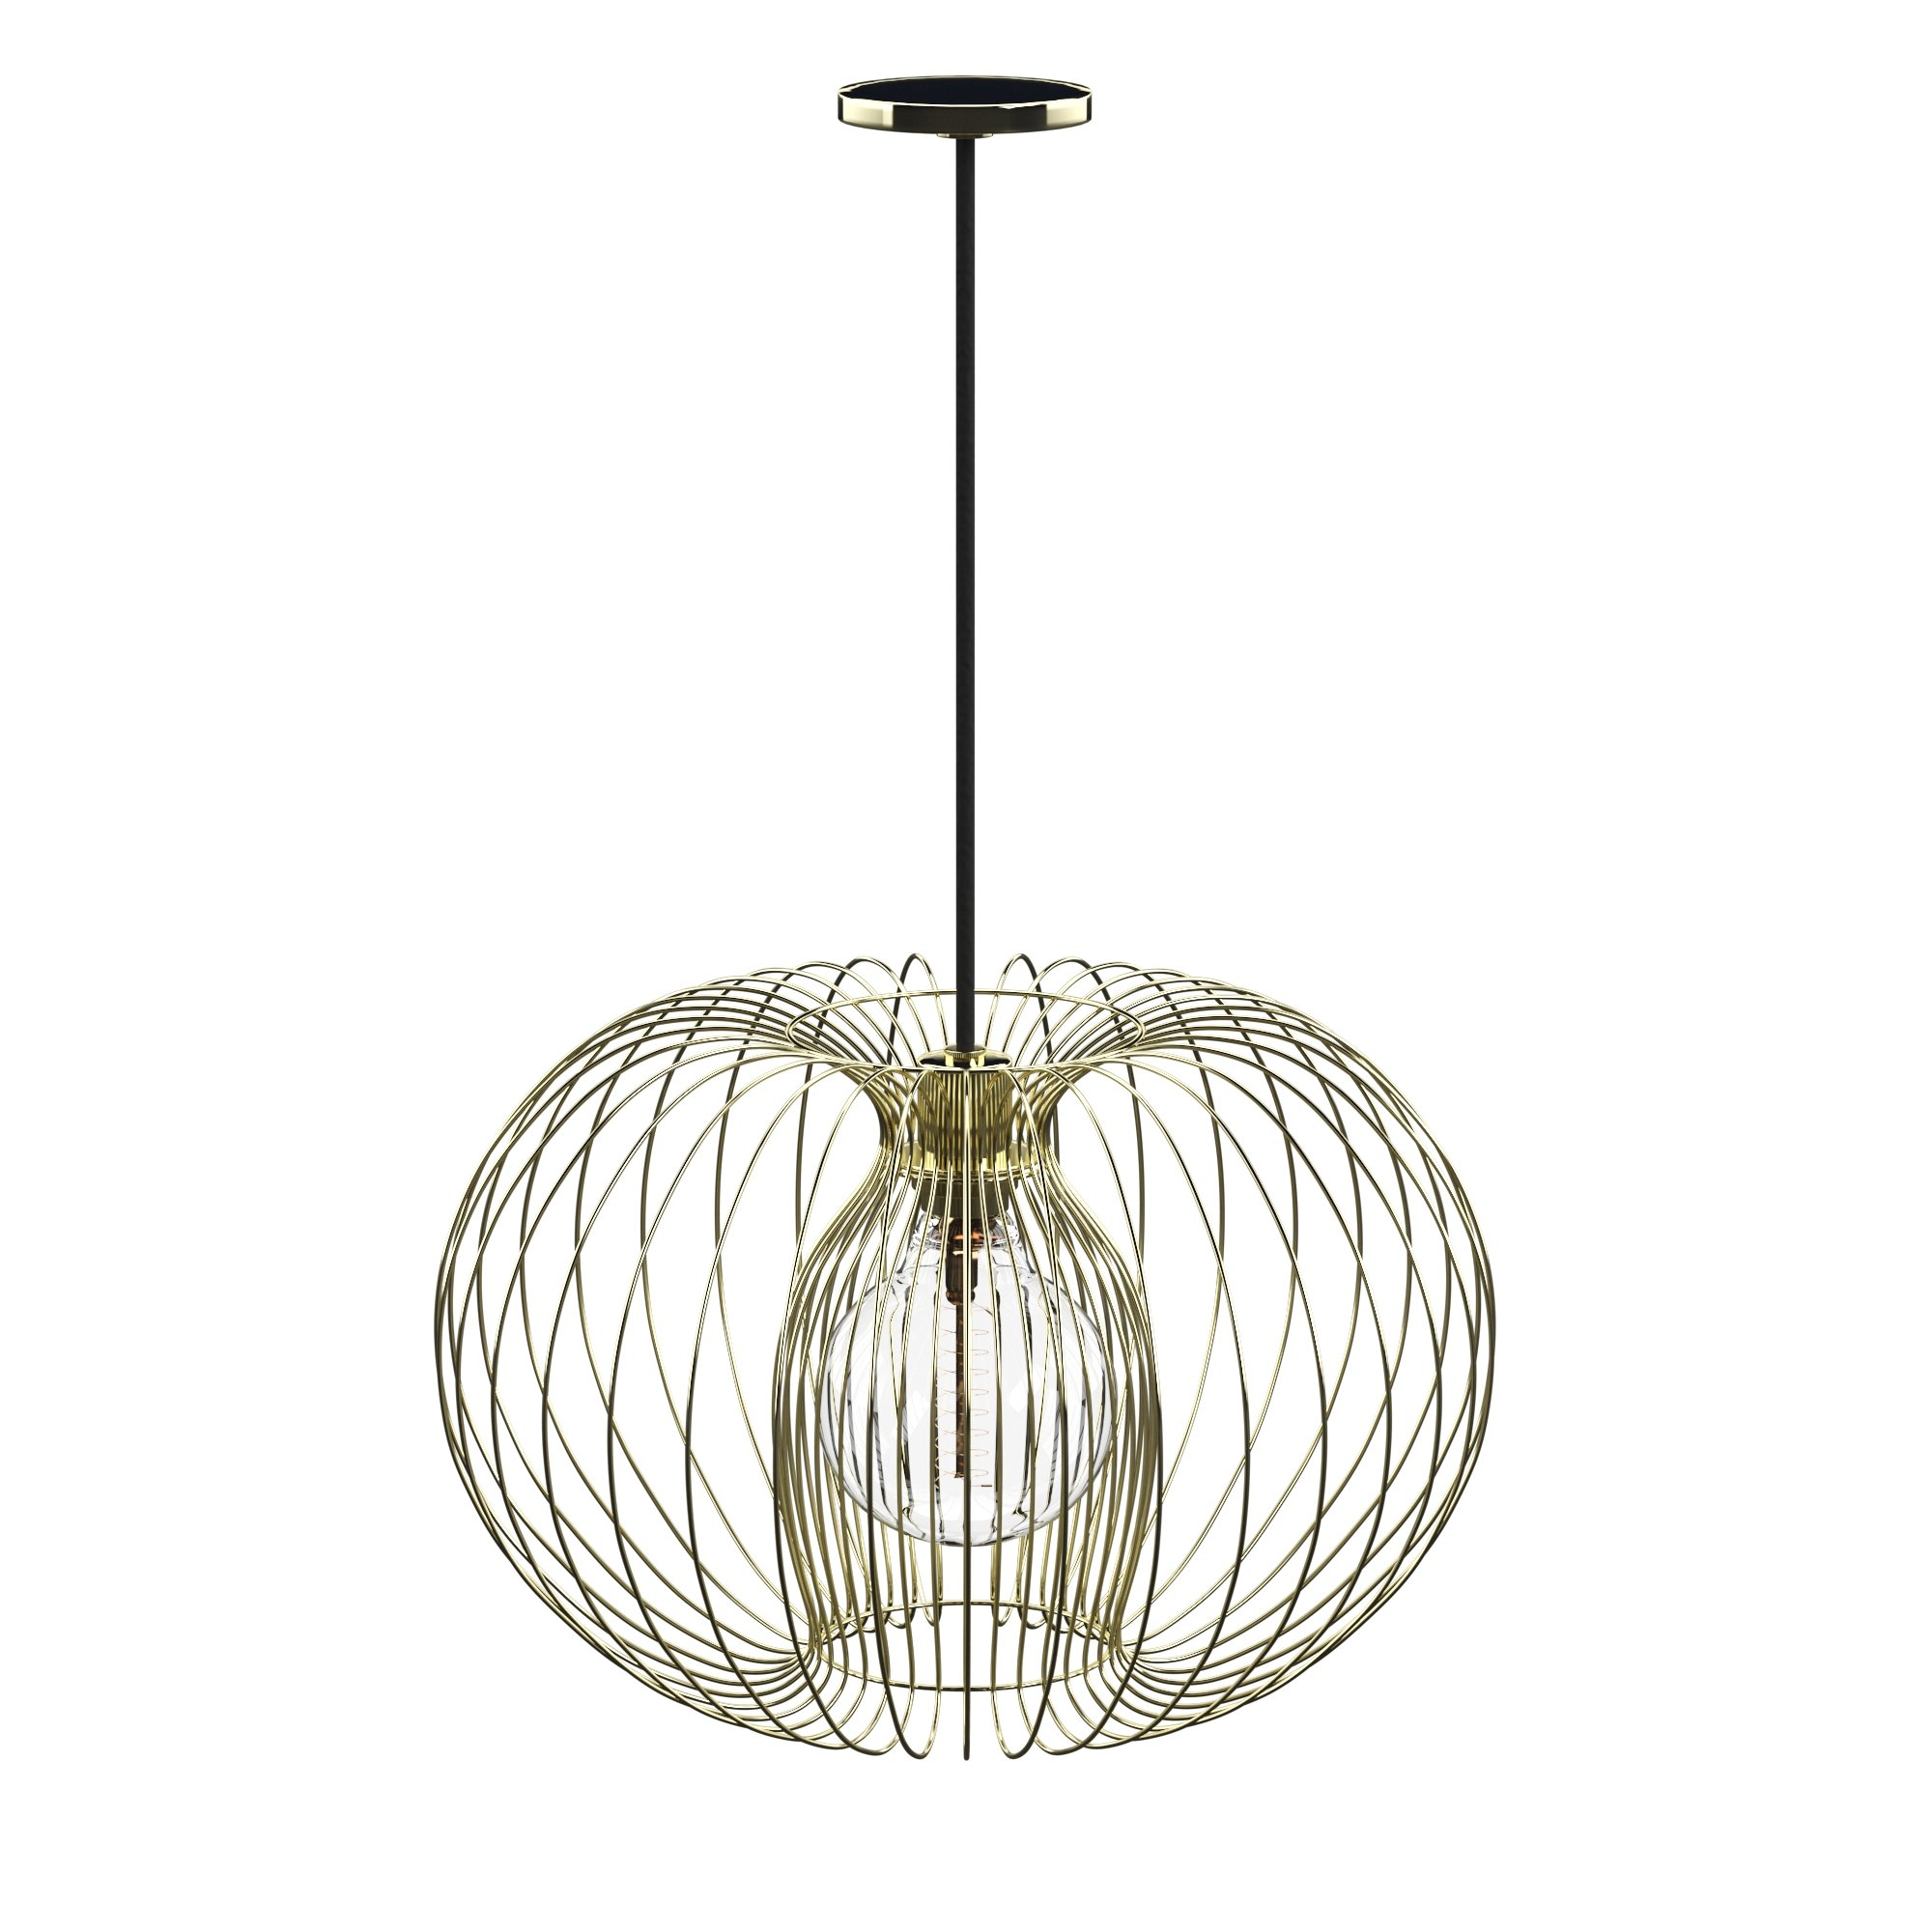 Kass 1-Light Geometric Pendant pertaining to Most Up-to-Date Hydetown 1-Light Single Geometric Pendants